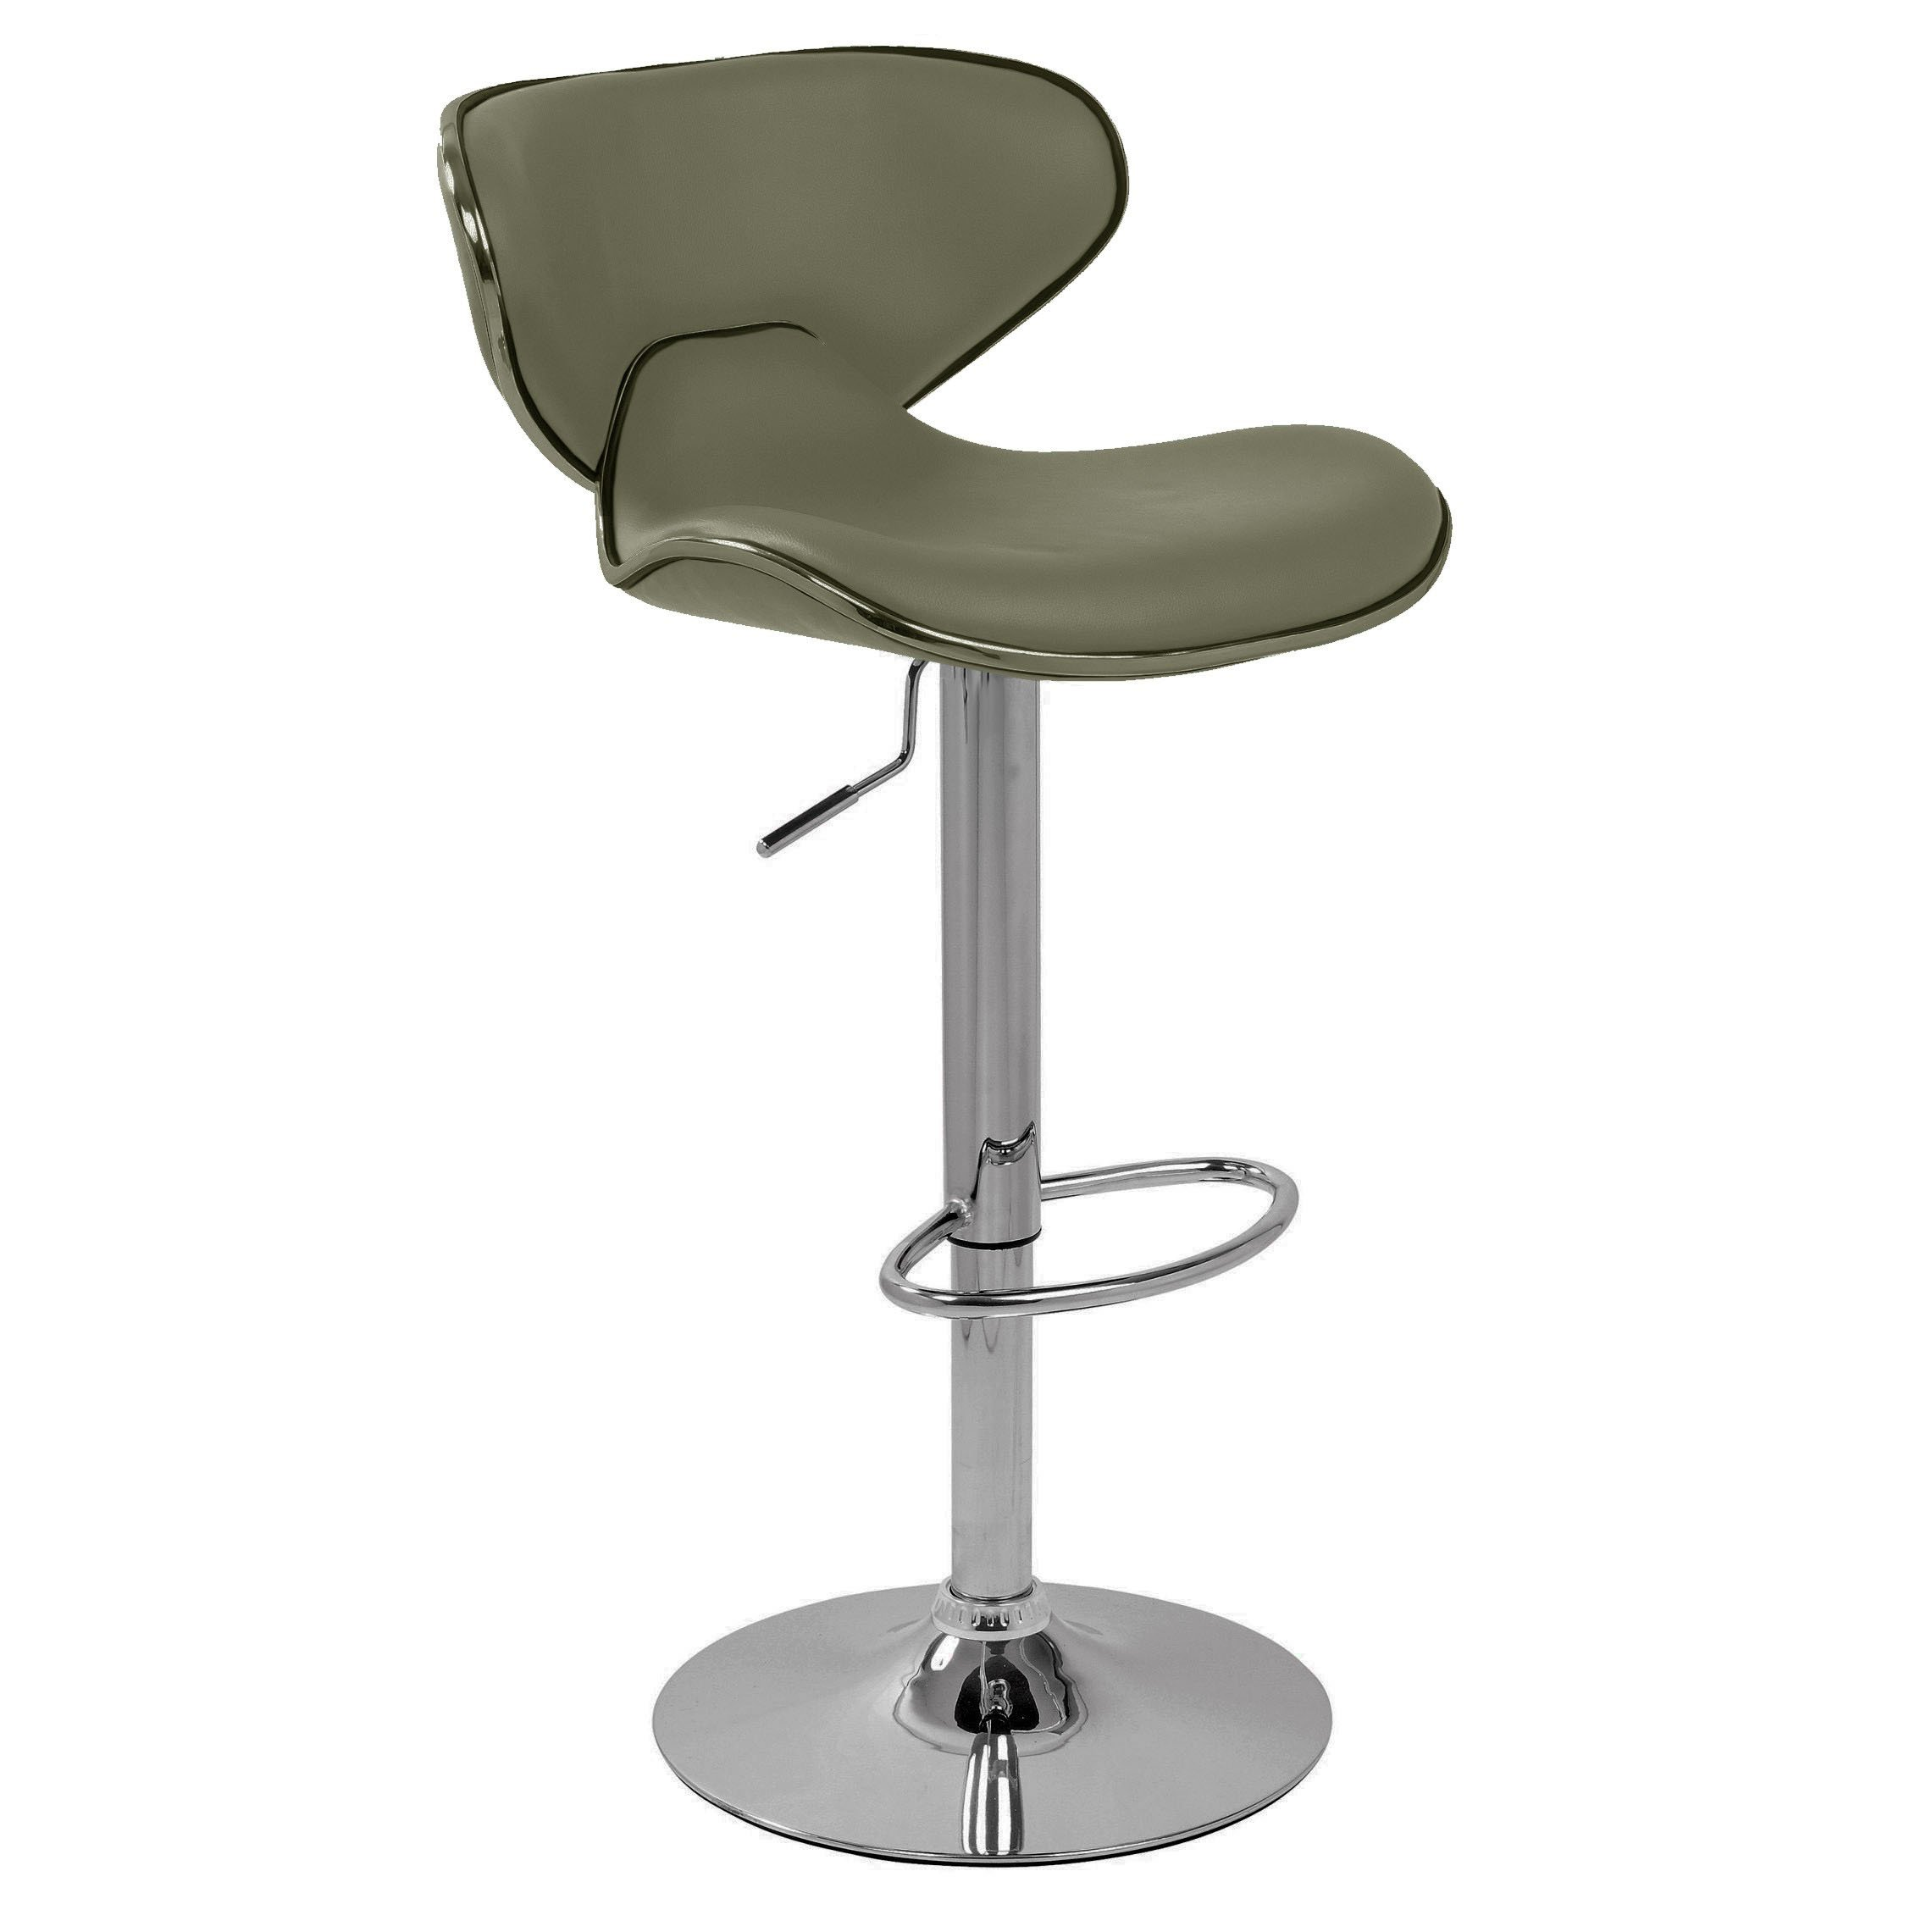 Carcaso Bar Stool - Grey